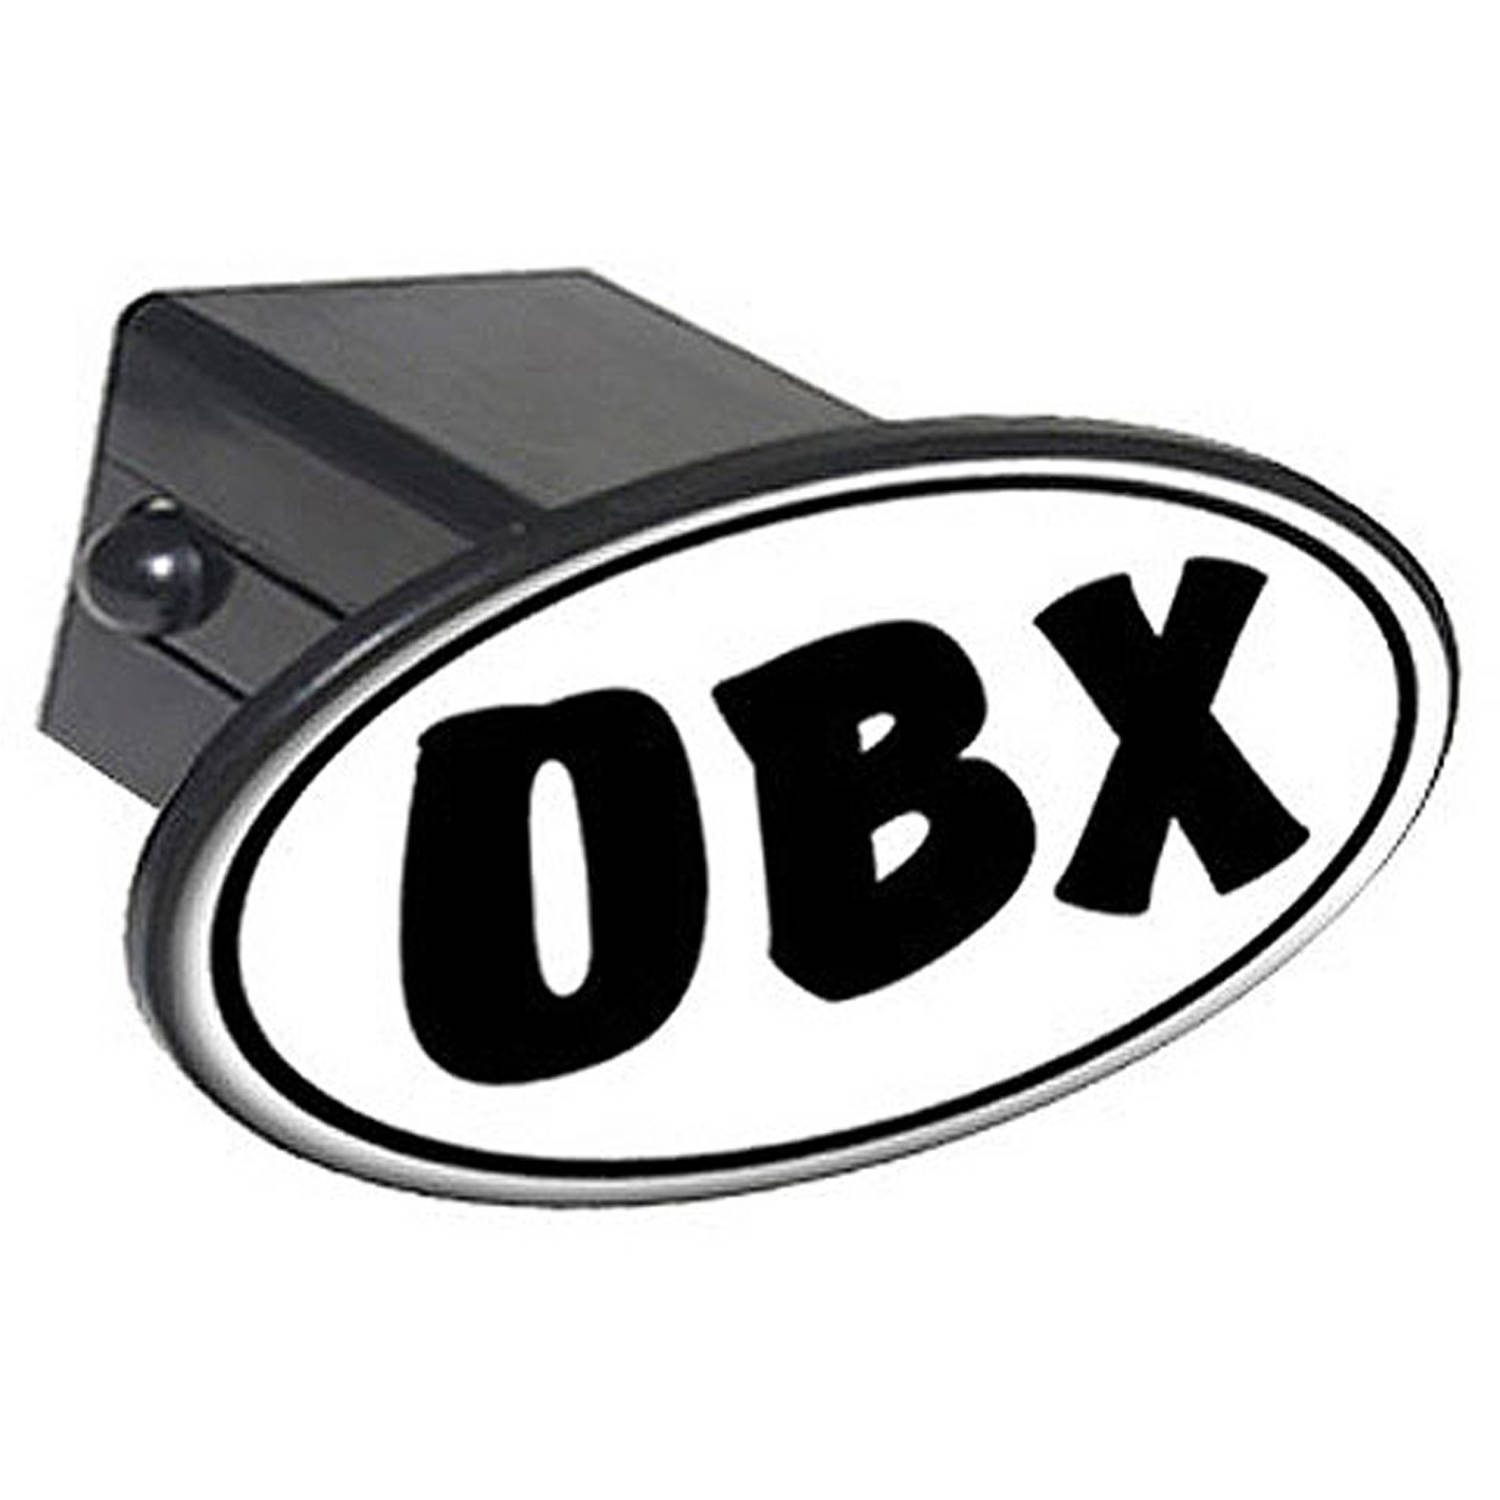 "Obx Euro Oval, Outer Banks Nc North Carolina 2"" Oval Tow Trailer Hitch Cover Plug Insert"